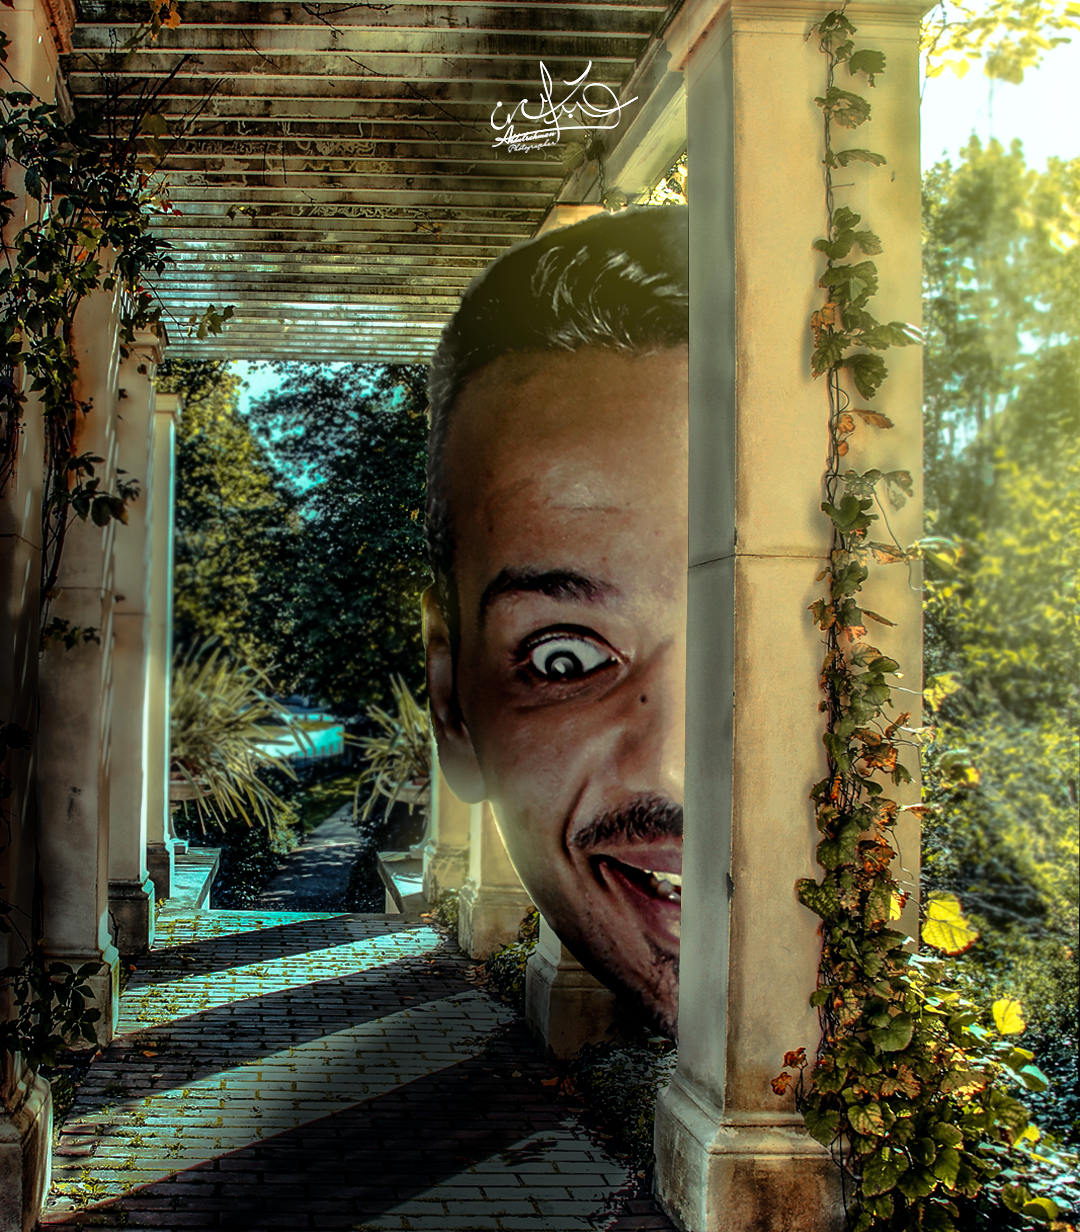 archway-garden-ivy-gang-flo : Free Download, Borrow, and Streaming ...